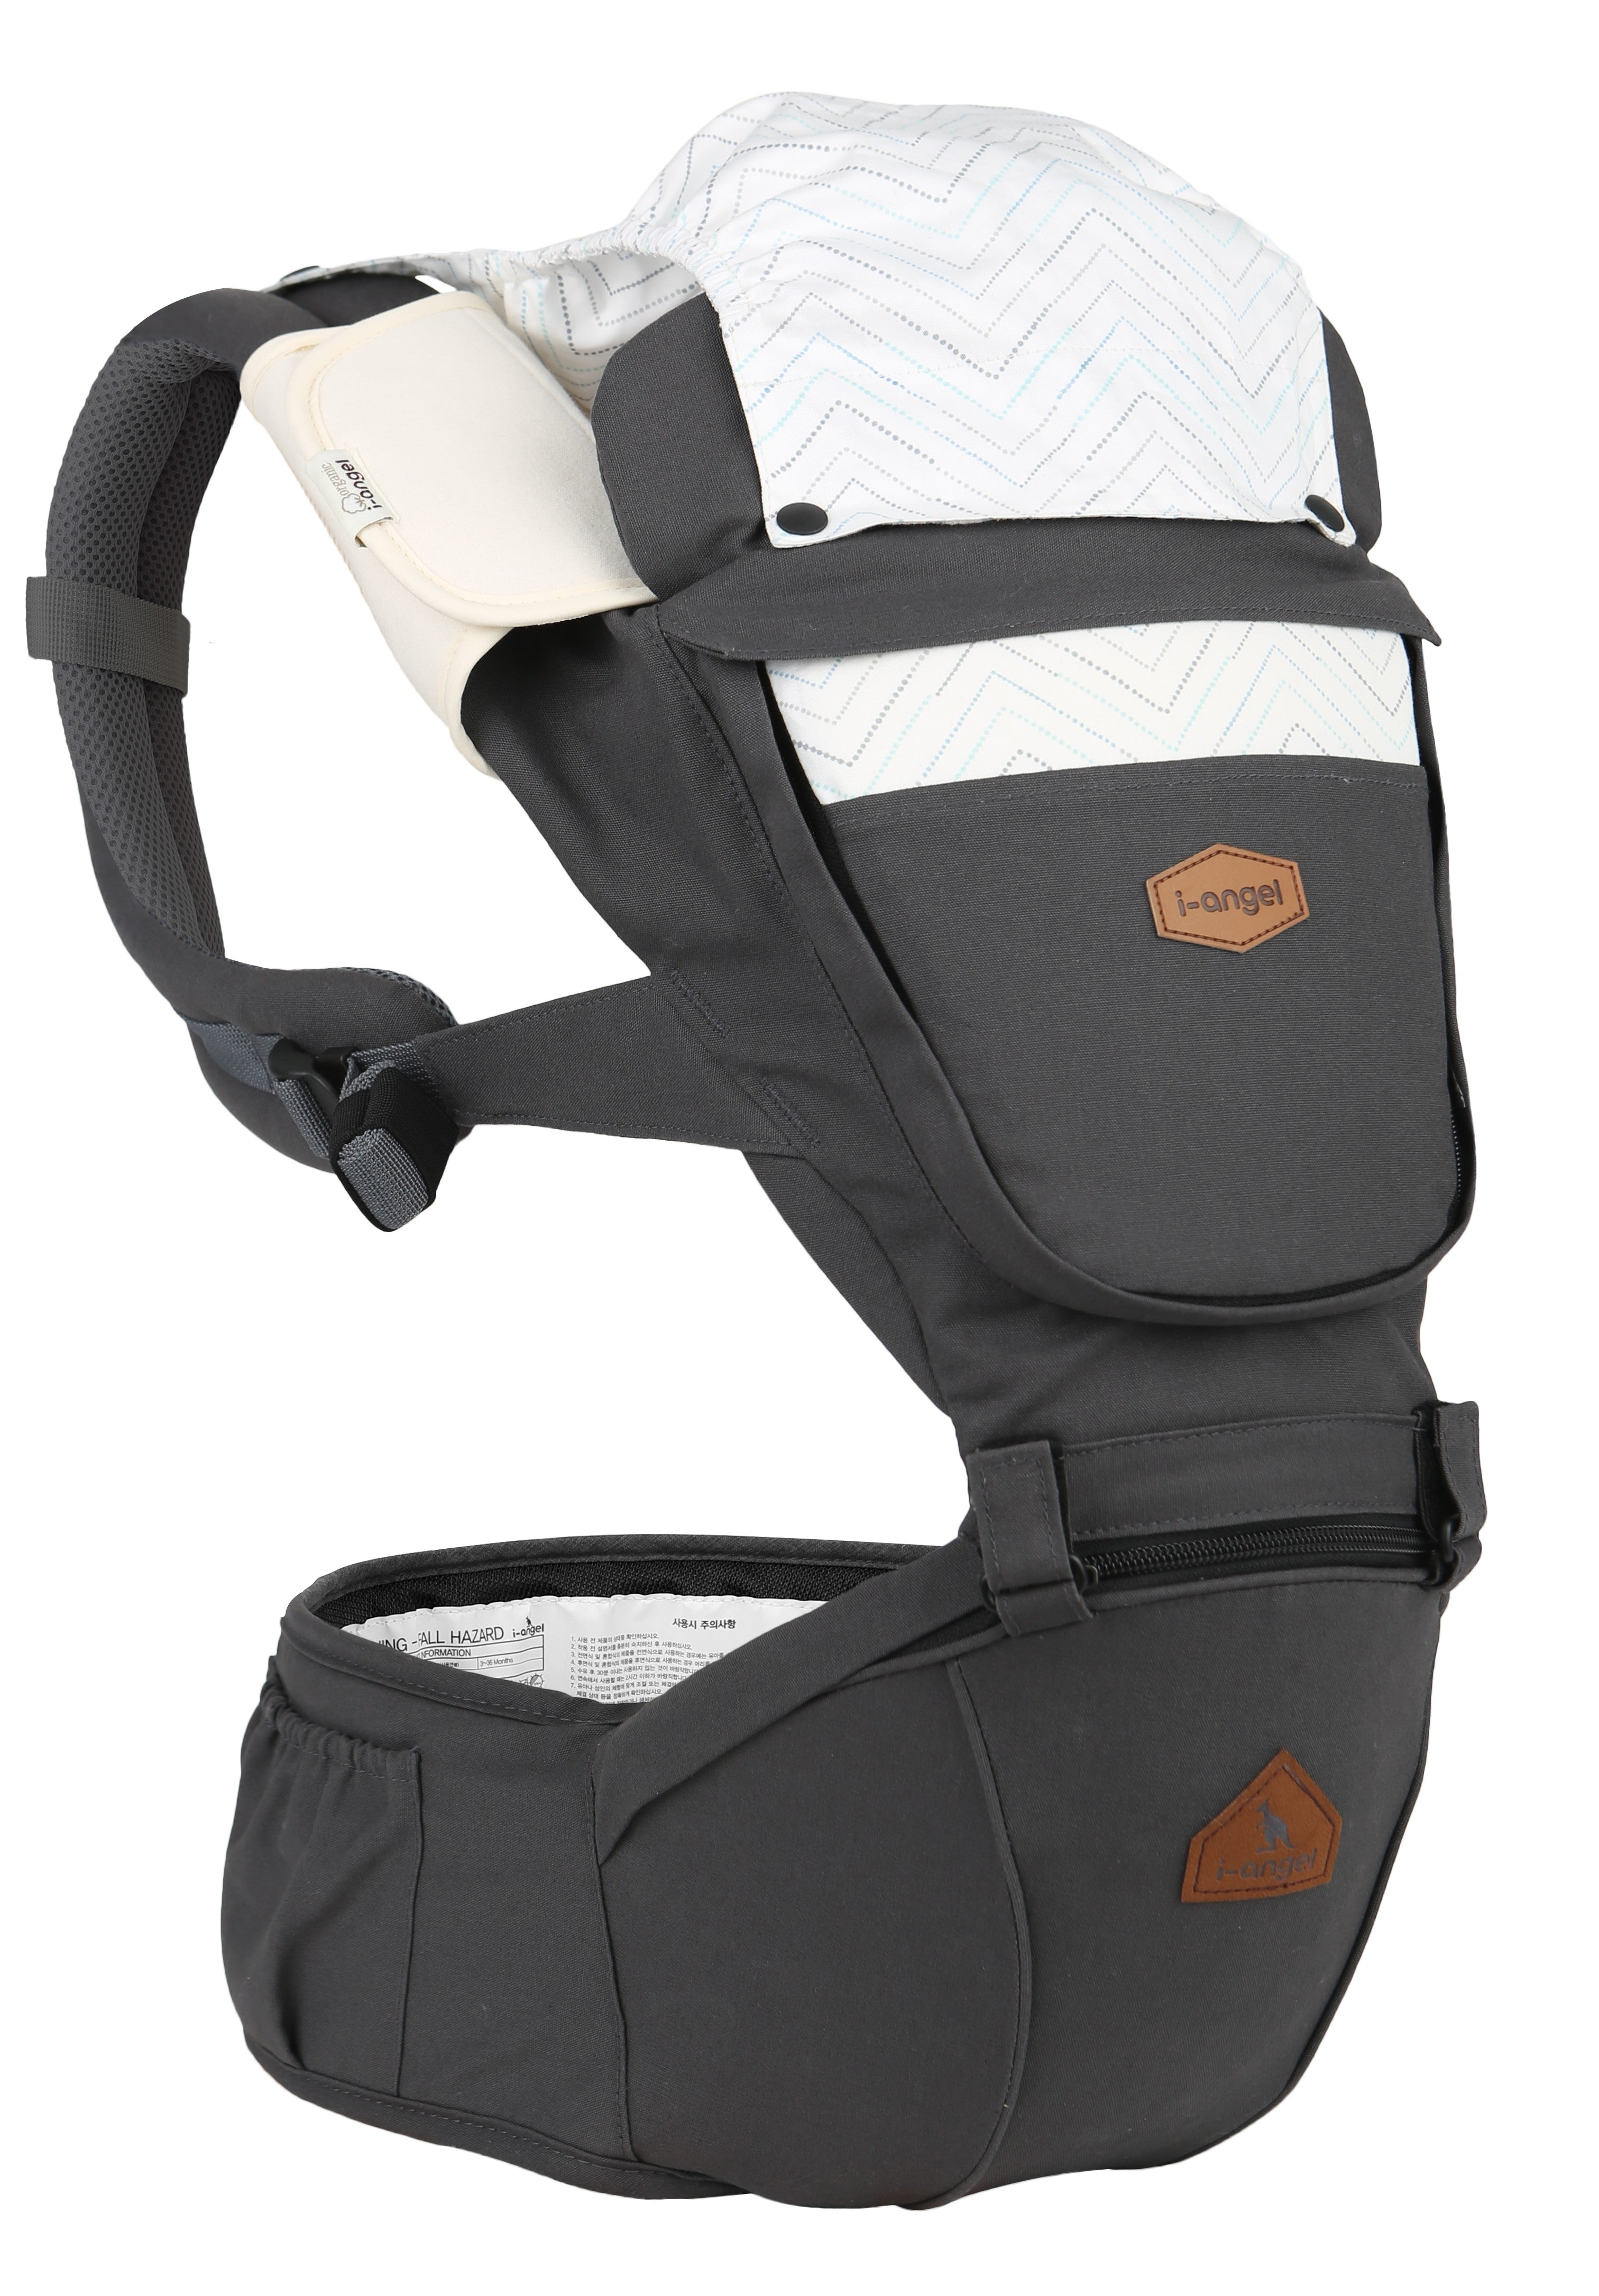 I-ANGEL HIPSEAT CARRIER - Nature - Mighty Baby PH